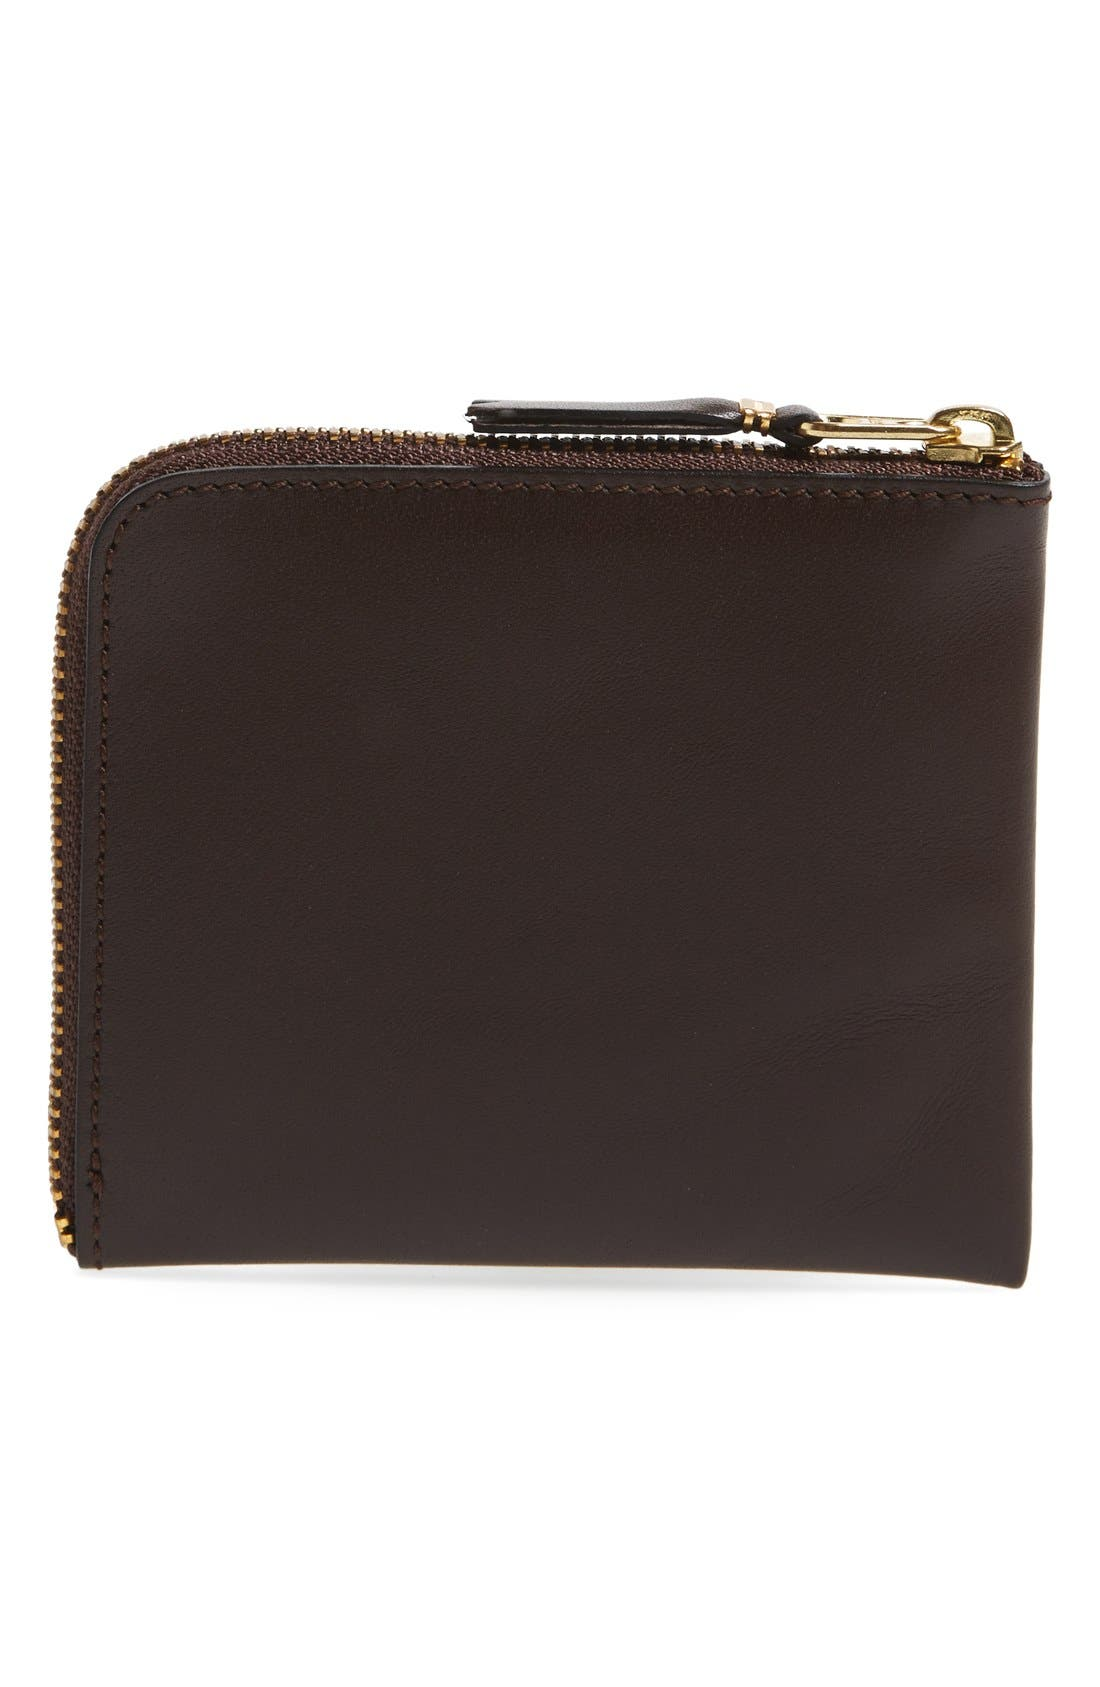 Alternate Image 3  - Comme des Garçons Half-Zip Leather Wallet